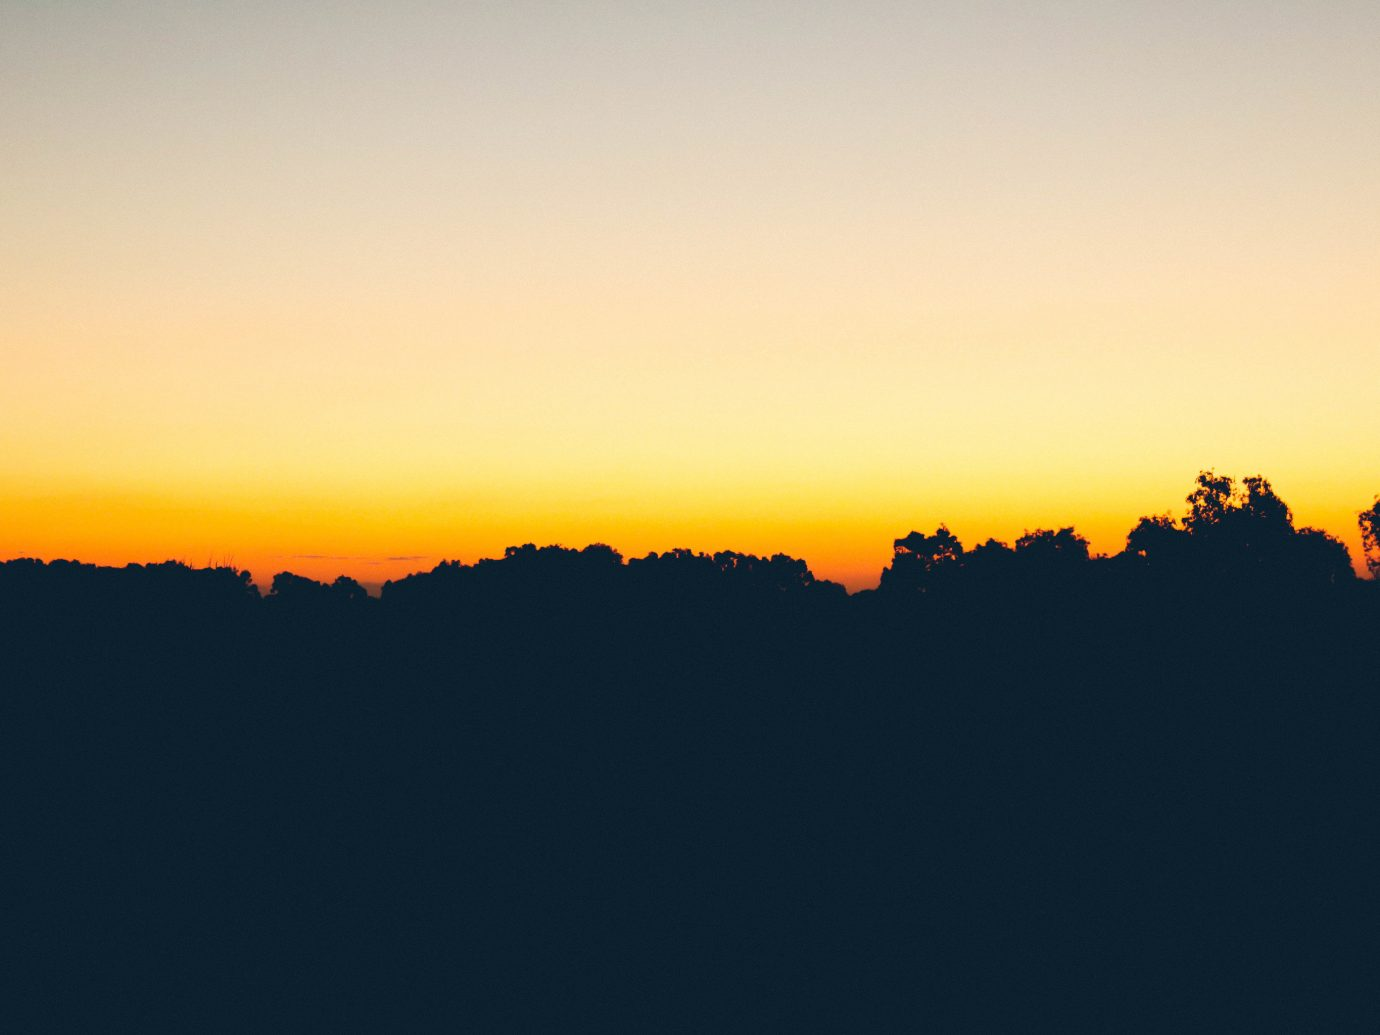 Trip Ideas outdoor sky Sunset horizon sunrise afterglow atmospheric phenomenon dawn red sky at morning atmosphere morning dusk evening hill mountain plain sunlight Sun clouds distance